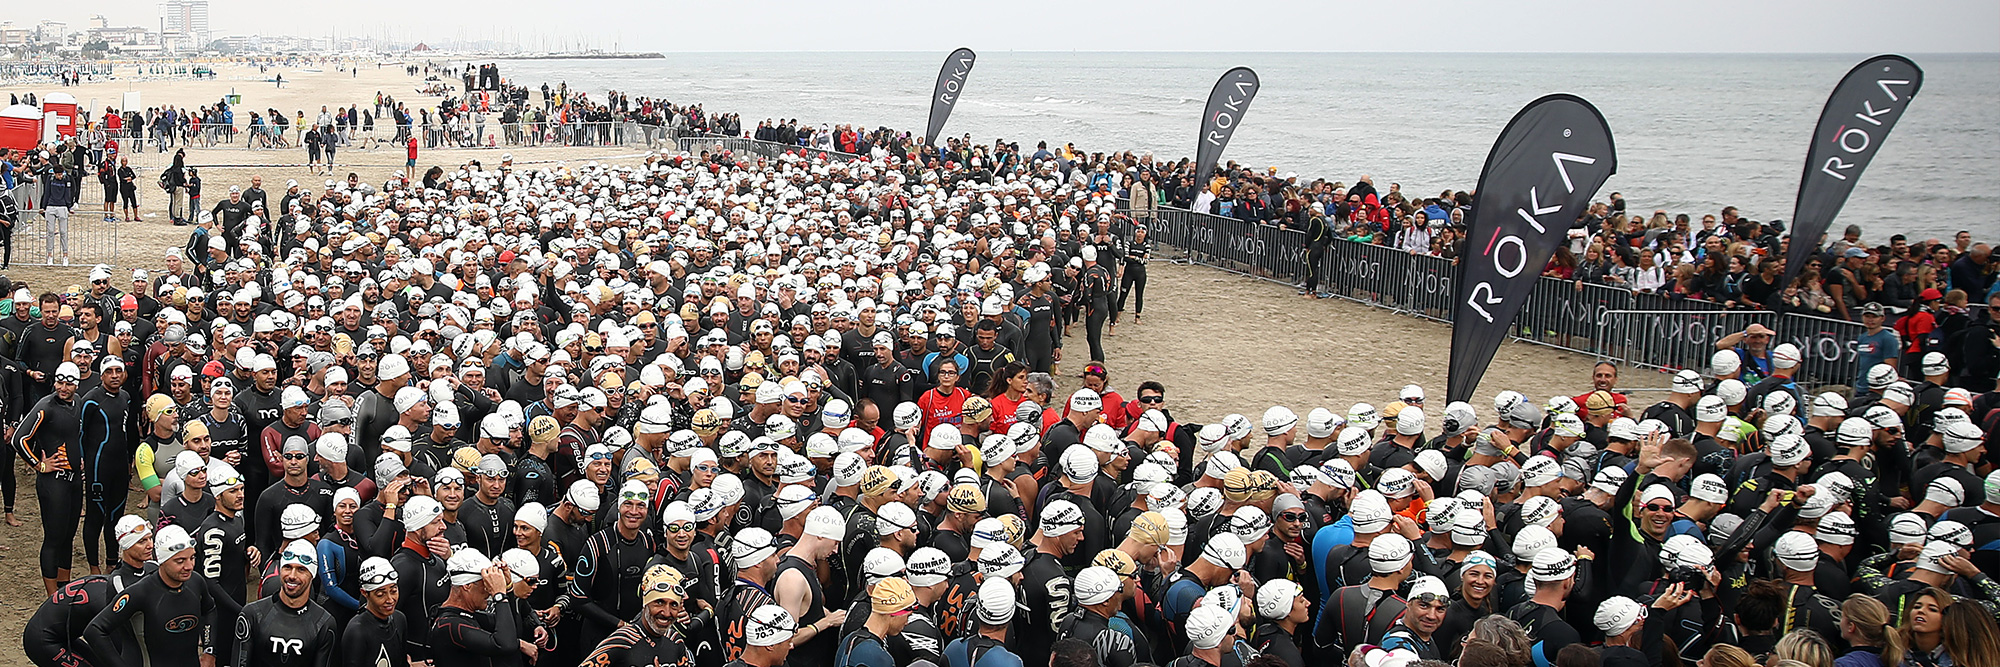 Hundreds of athletes are lining up at the swim start on the beach of Cervia to get into the Adriatic Sea